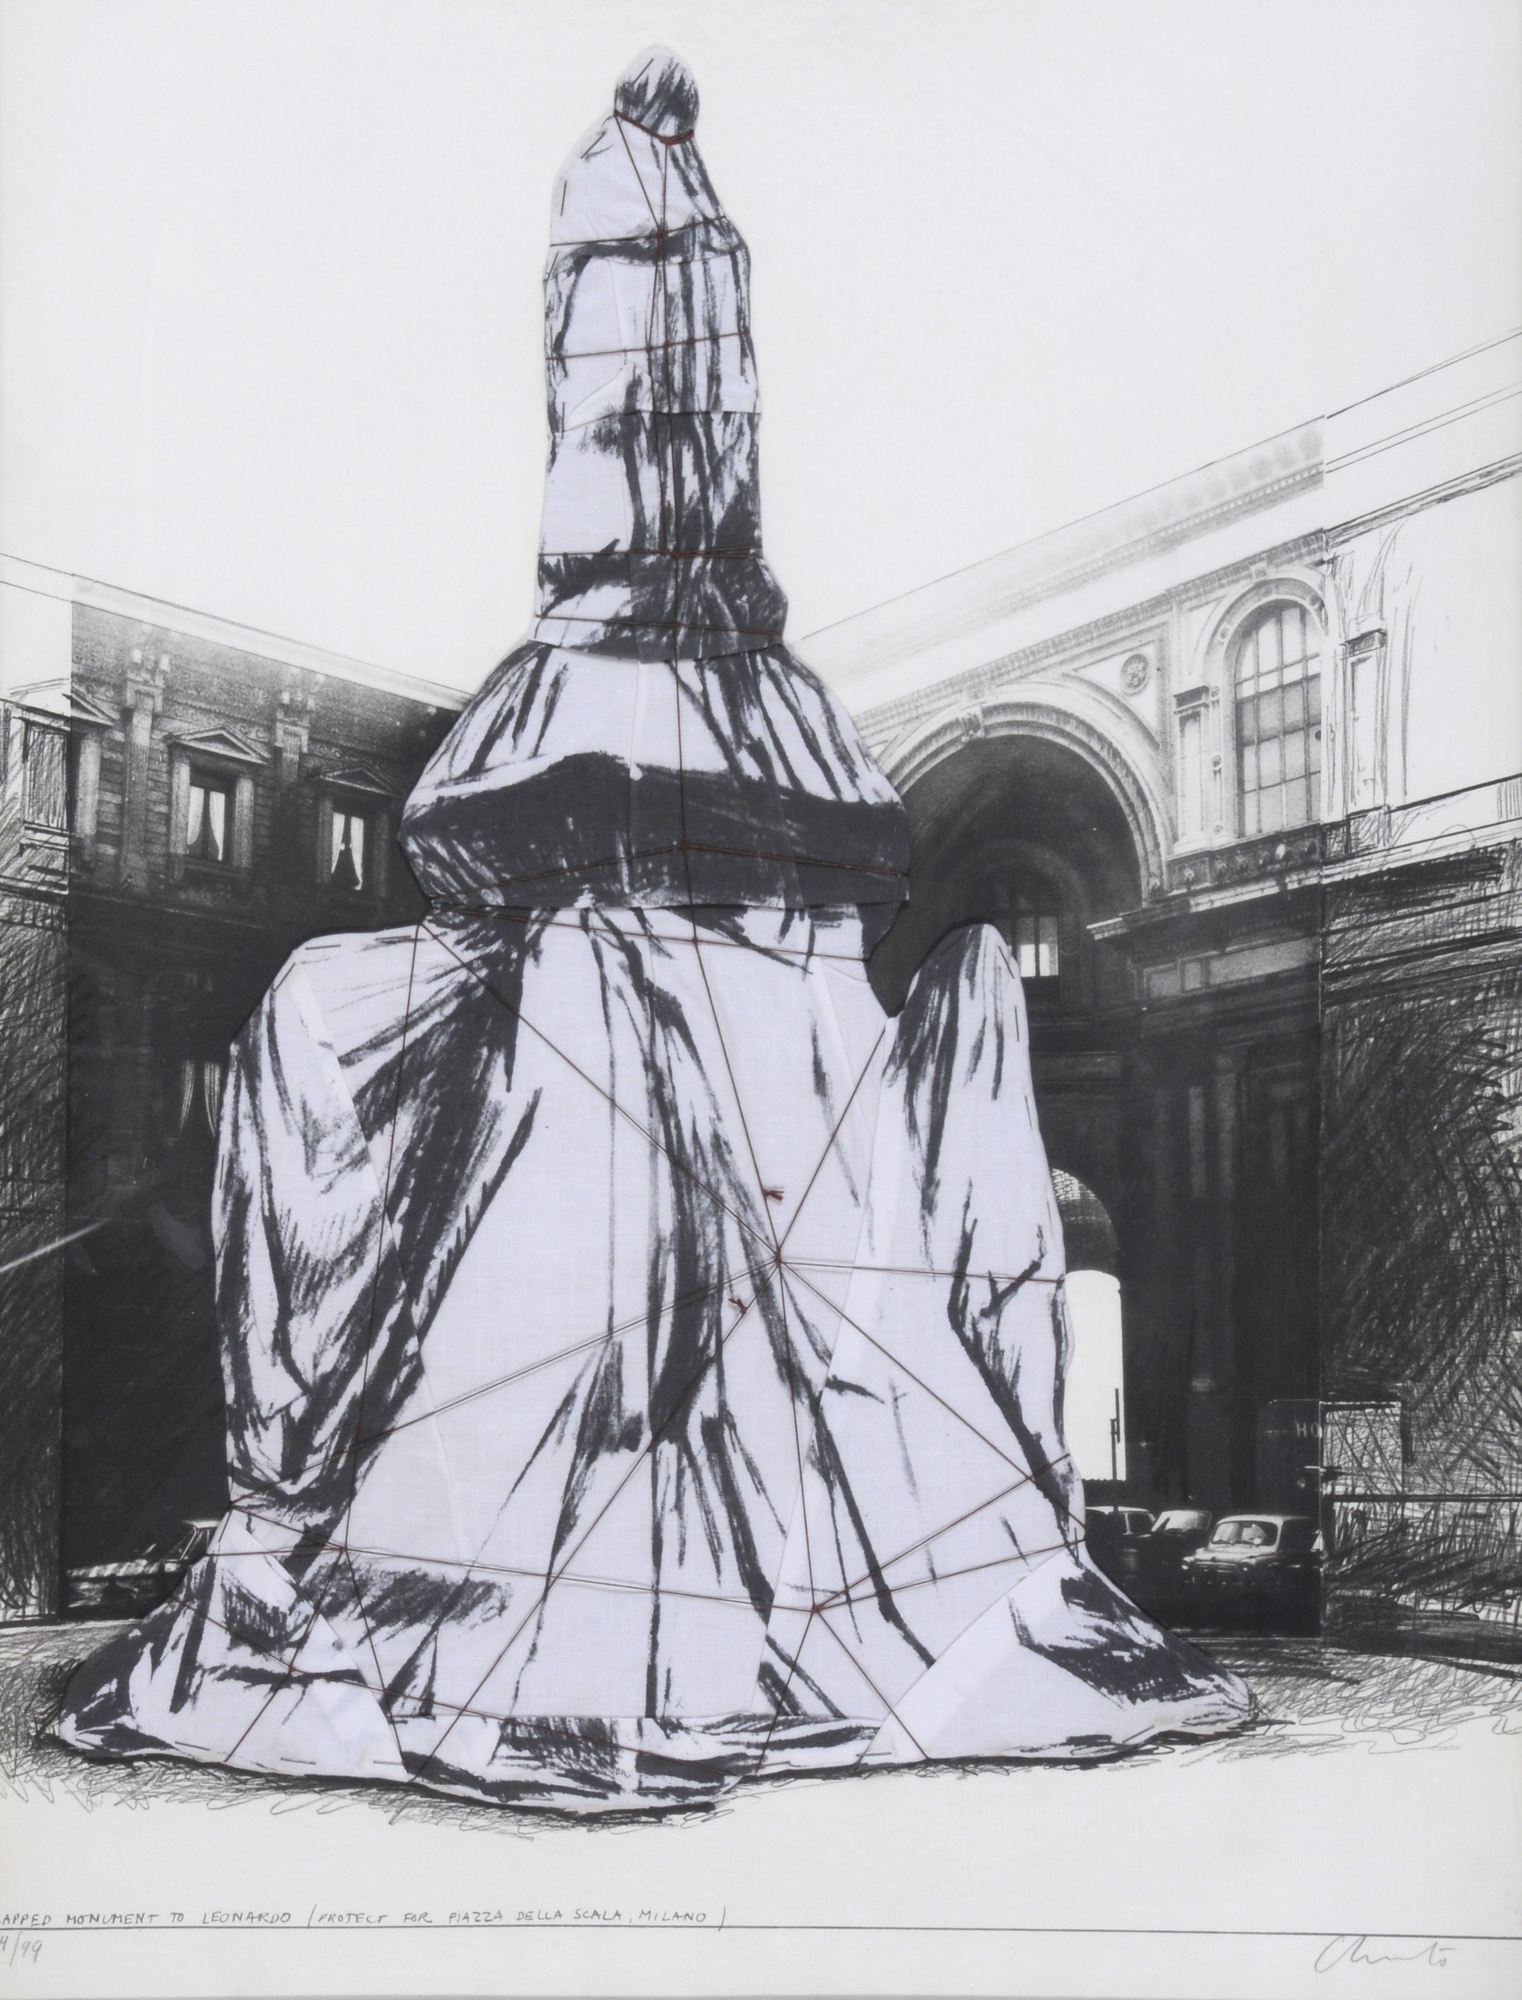 Christo, Wrapped Monument to Leonardo (Project for Piazza della Scala Milano)